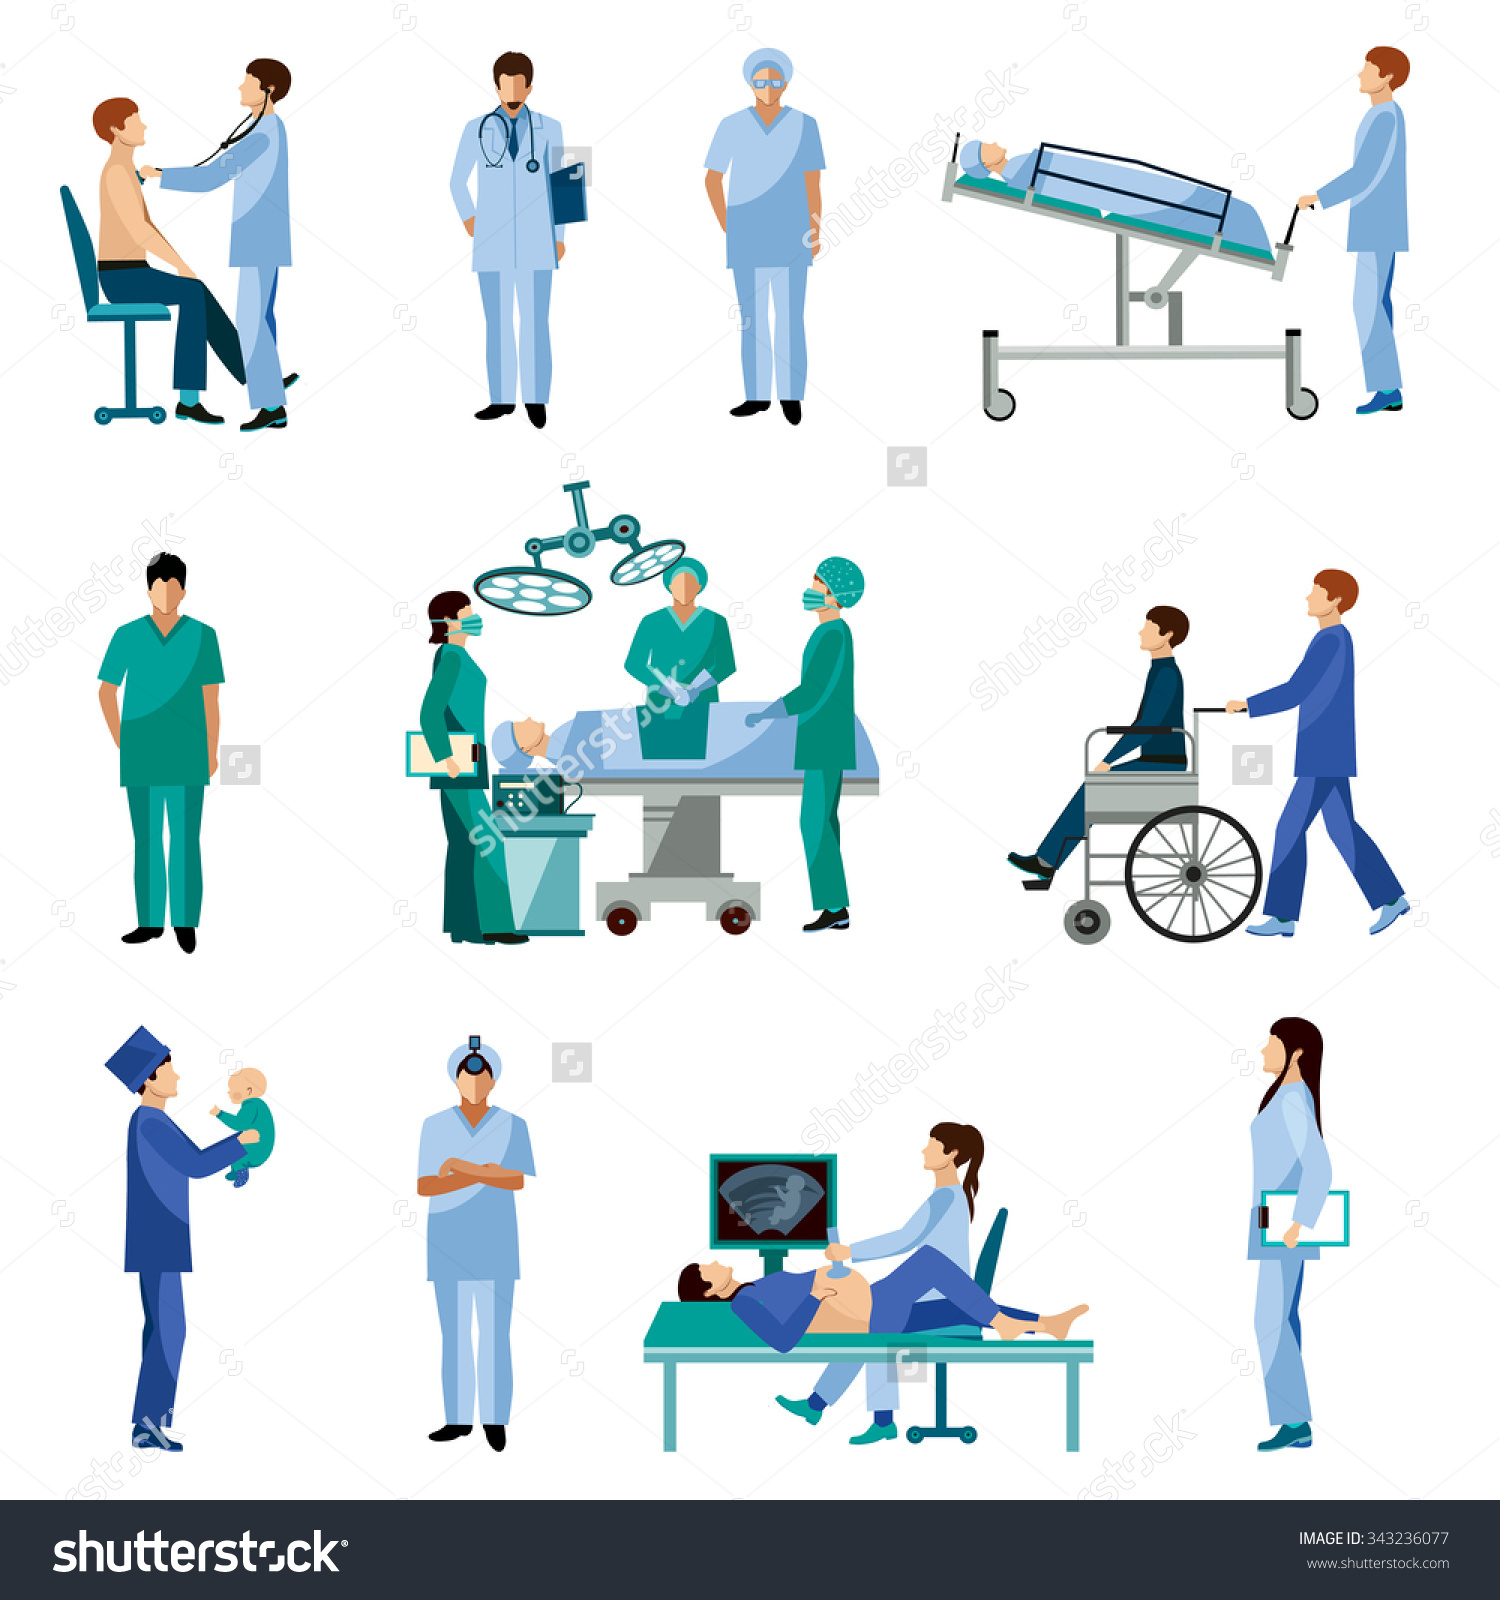 Medical Professionals Work Operation Room Flat Stock Vector.